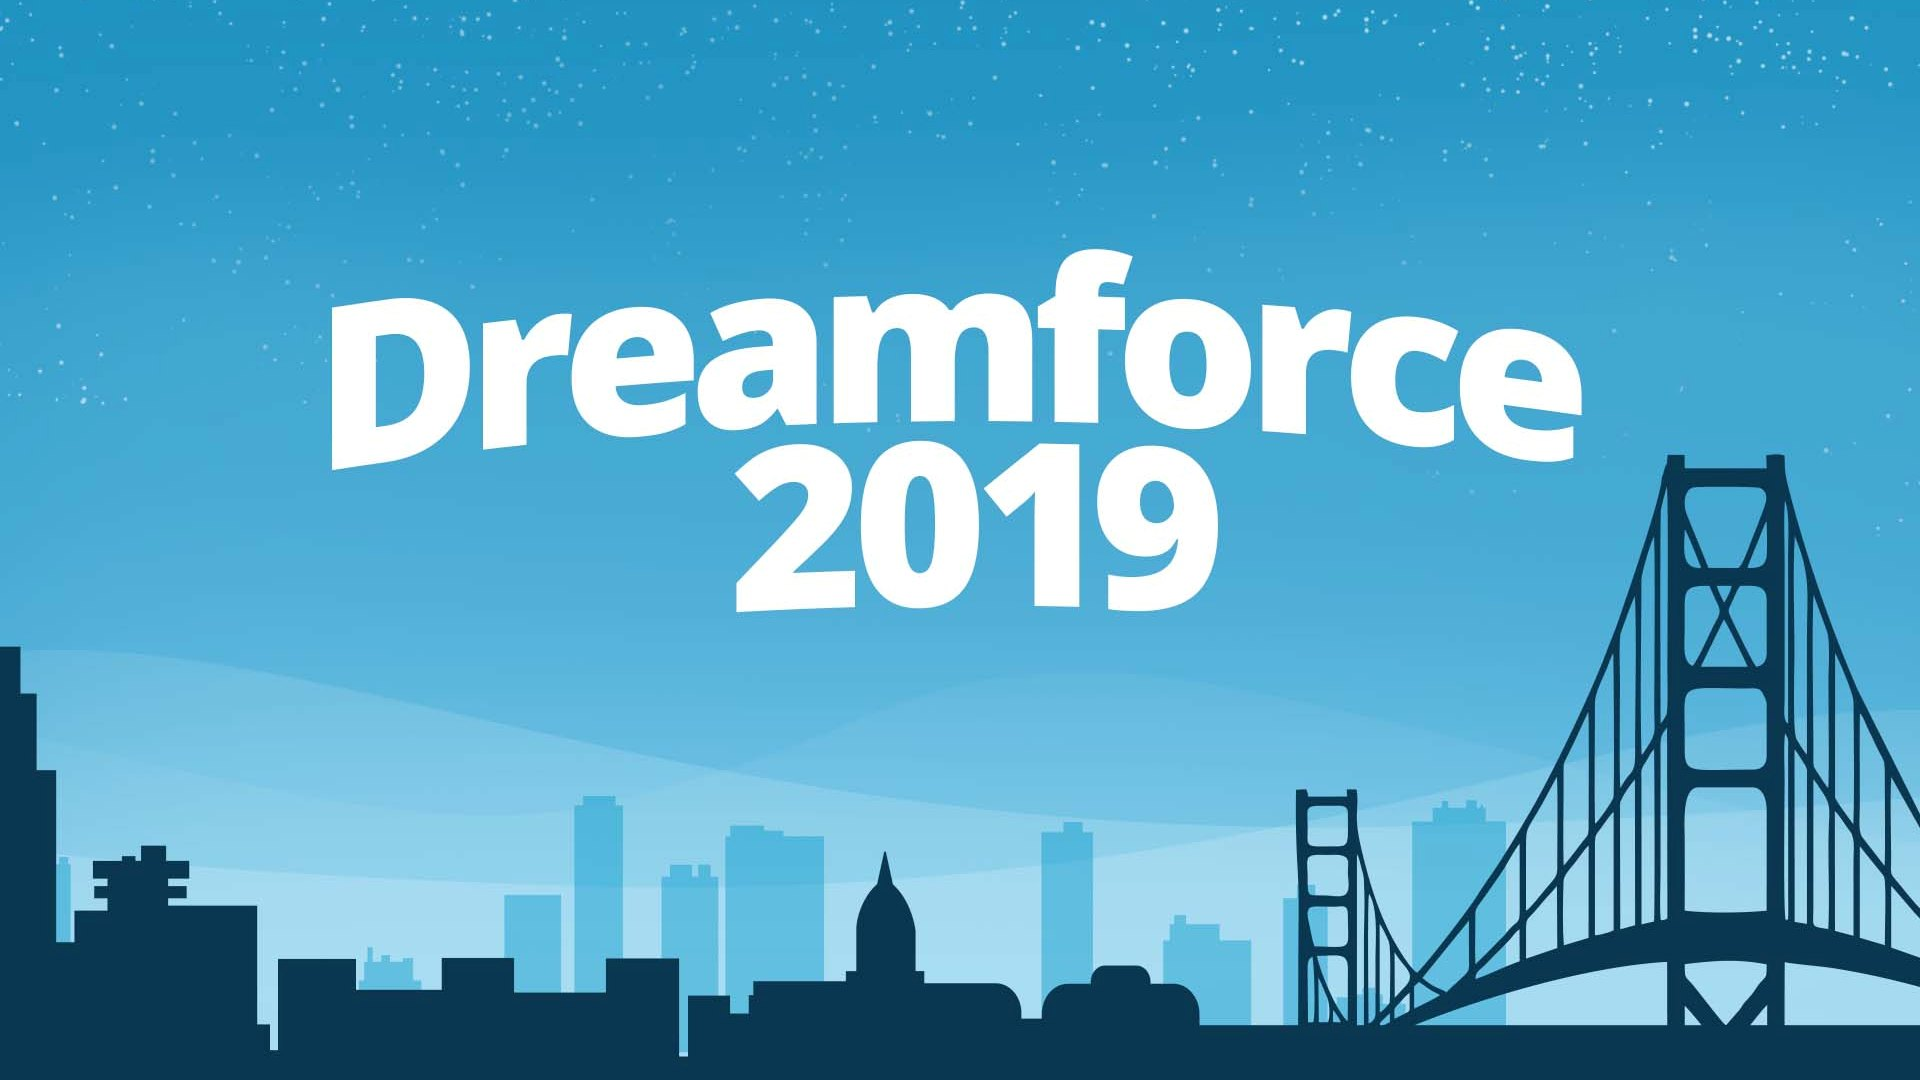 Dreamforce-2019_1920x1080.jpg